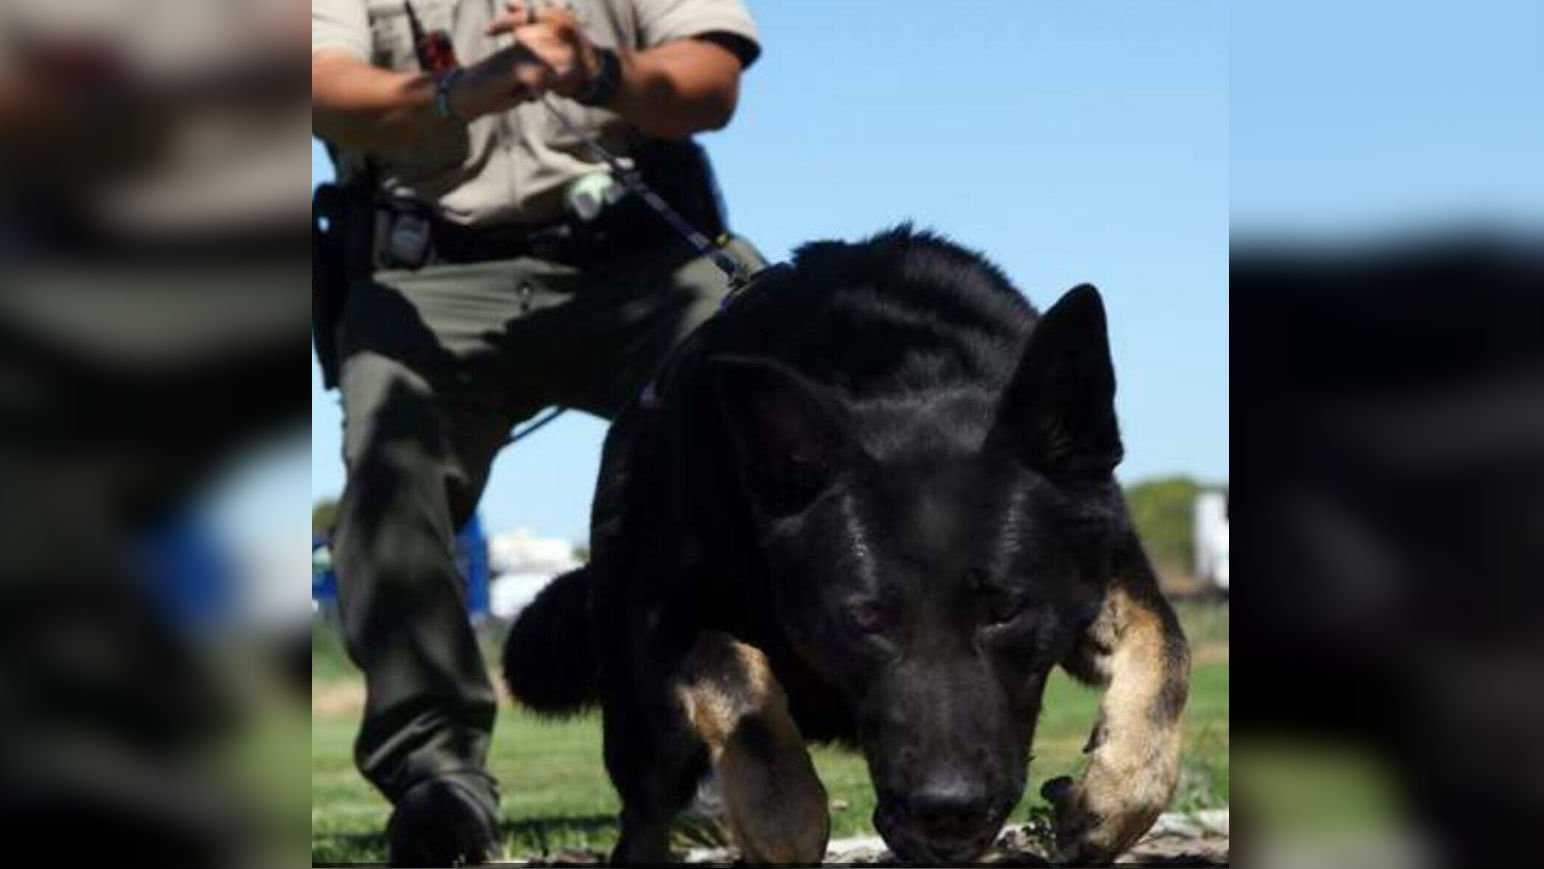 K9 Grizzly helps catch teen wanted for kidnapping, robbery near George